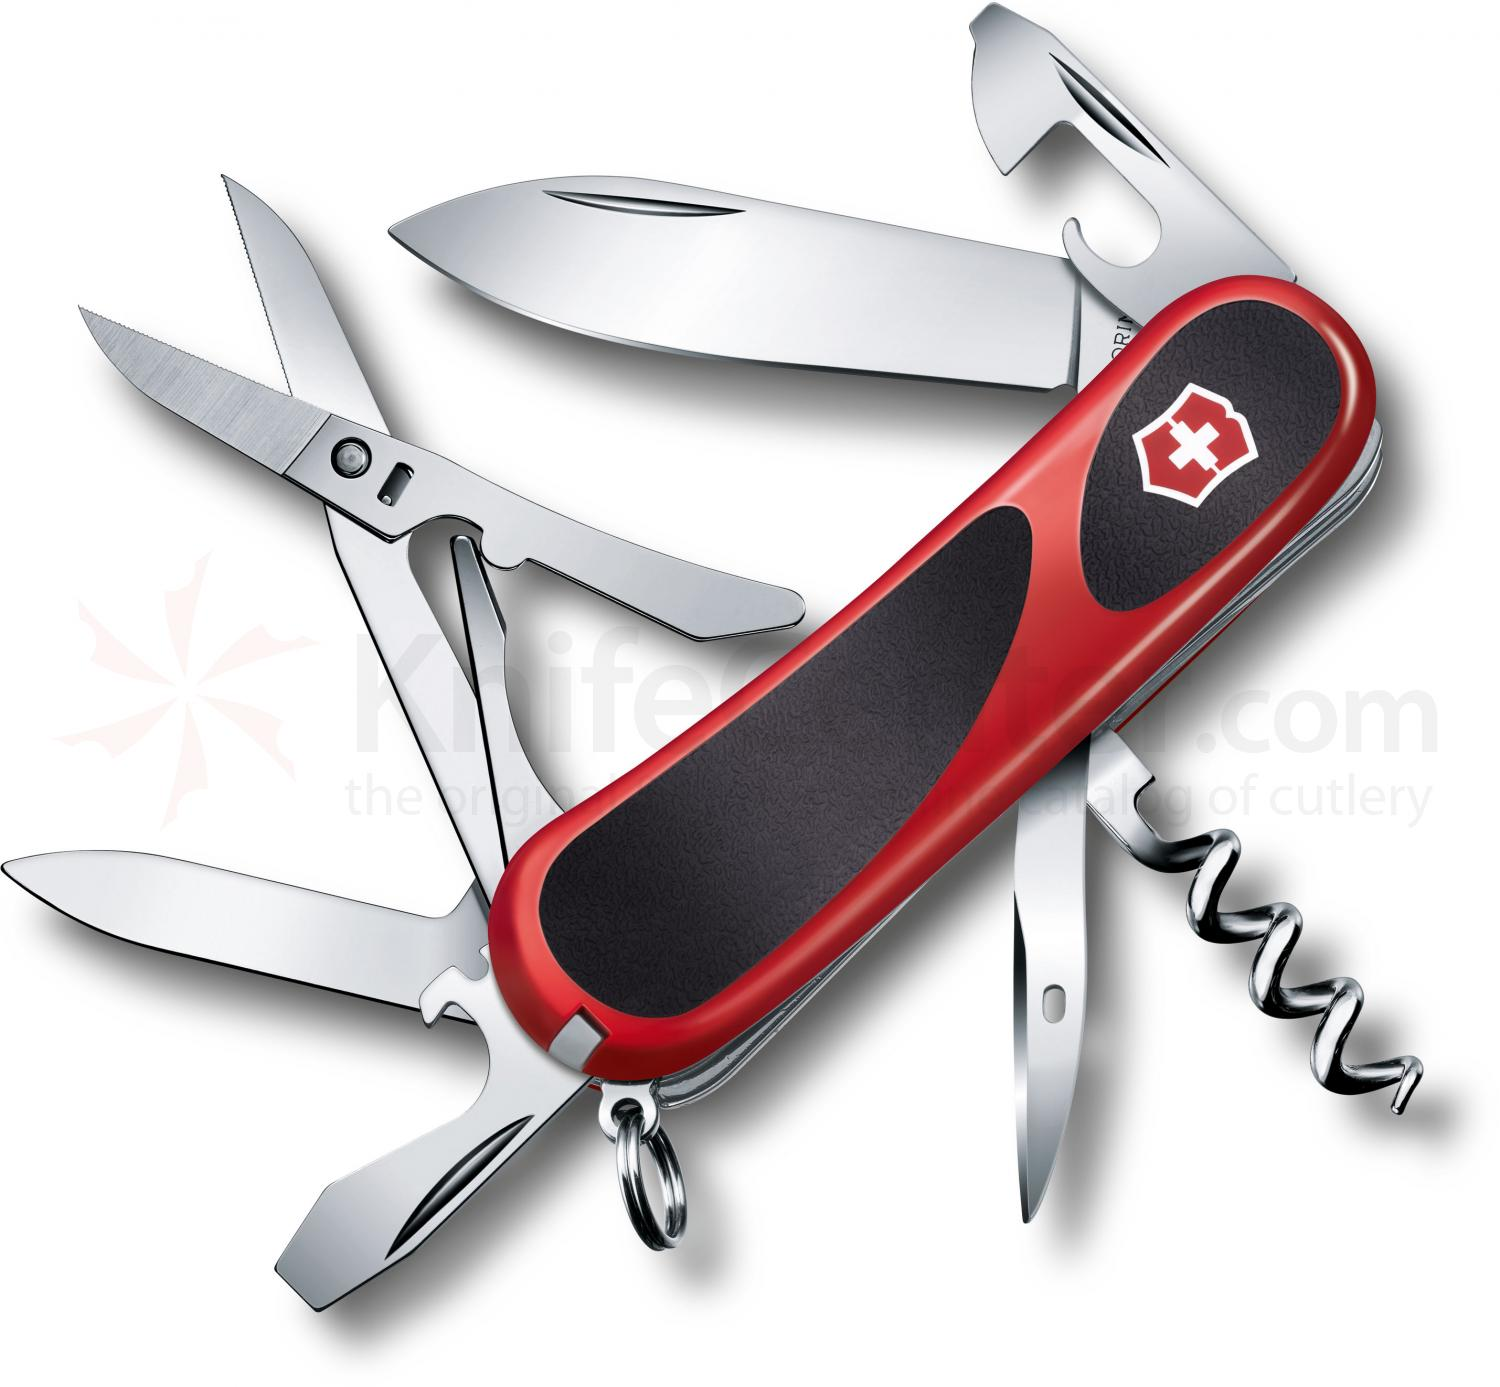 Victorinox Swiss Army 2.3903.C EvoGrip 14 Multi-Tool 3-3/8 inch Red Handles with Black Rubber Inserts